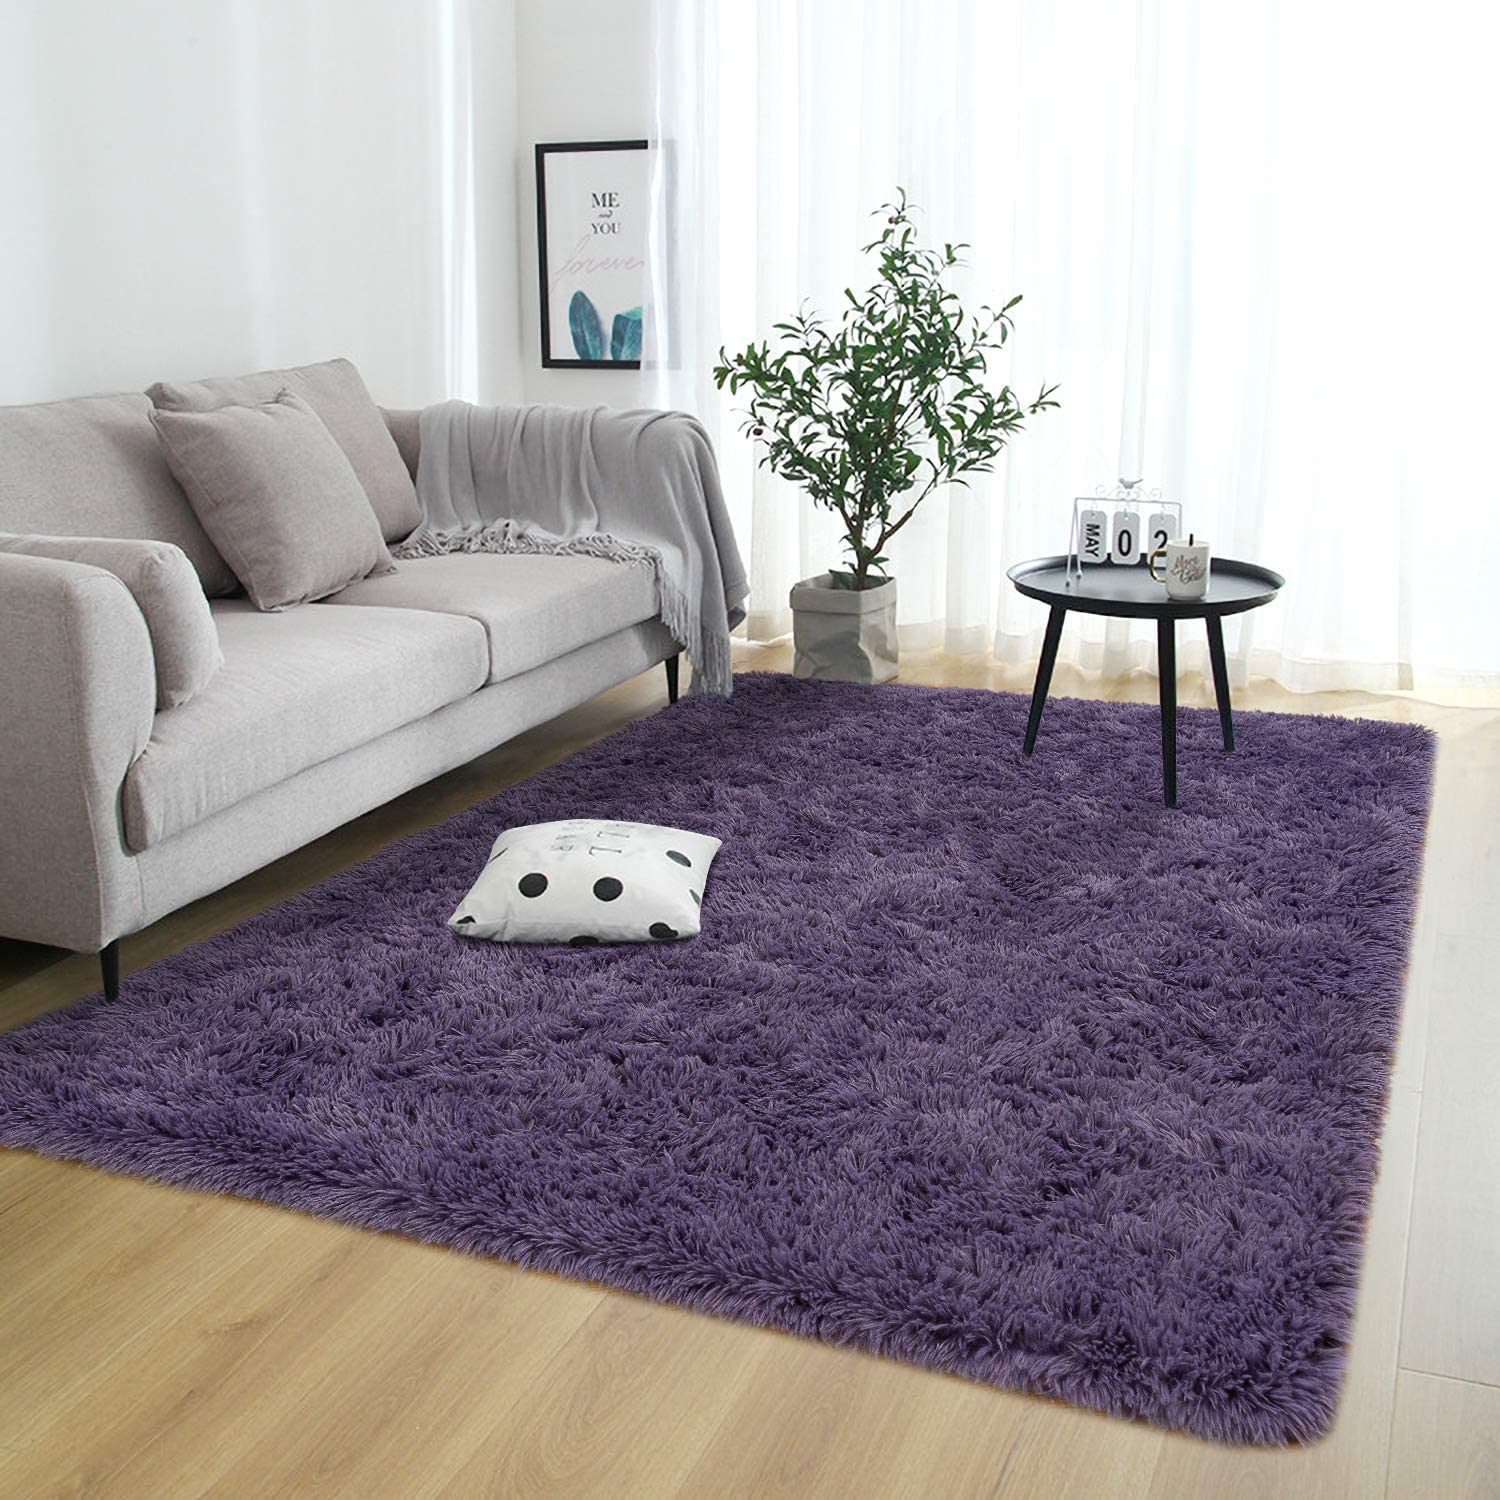 Rostyle Super Soft Fluffy Area Rugs for Bedroom Living Room Shaggy Floor Carpets Shag Christmas Rug for Girls Boys Furry Home Decorative Rugs, 4 ft x 6 ft, Grey-Purple